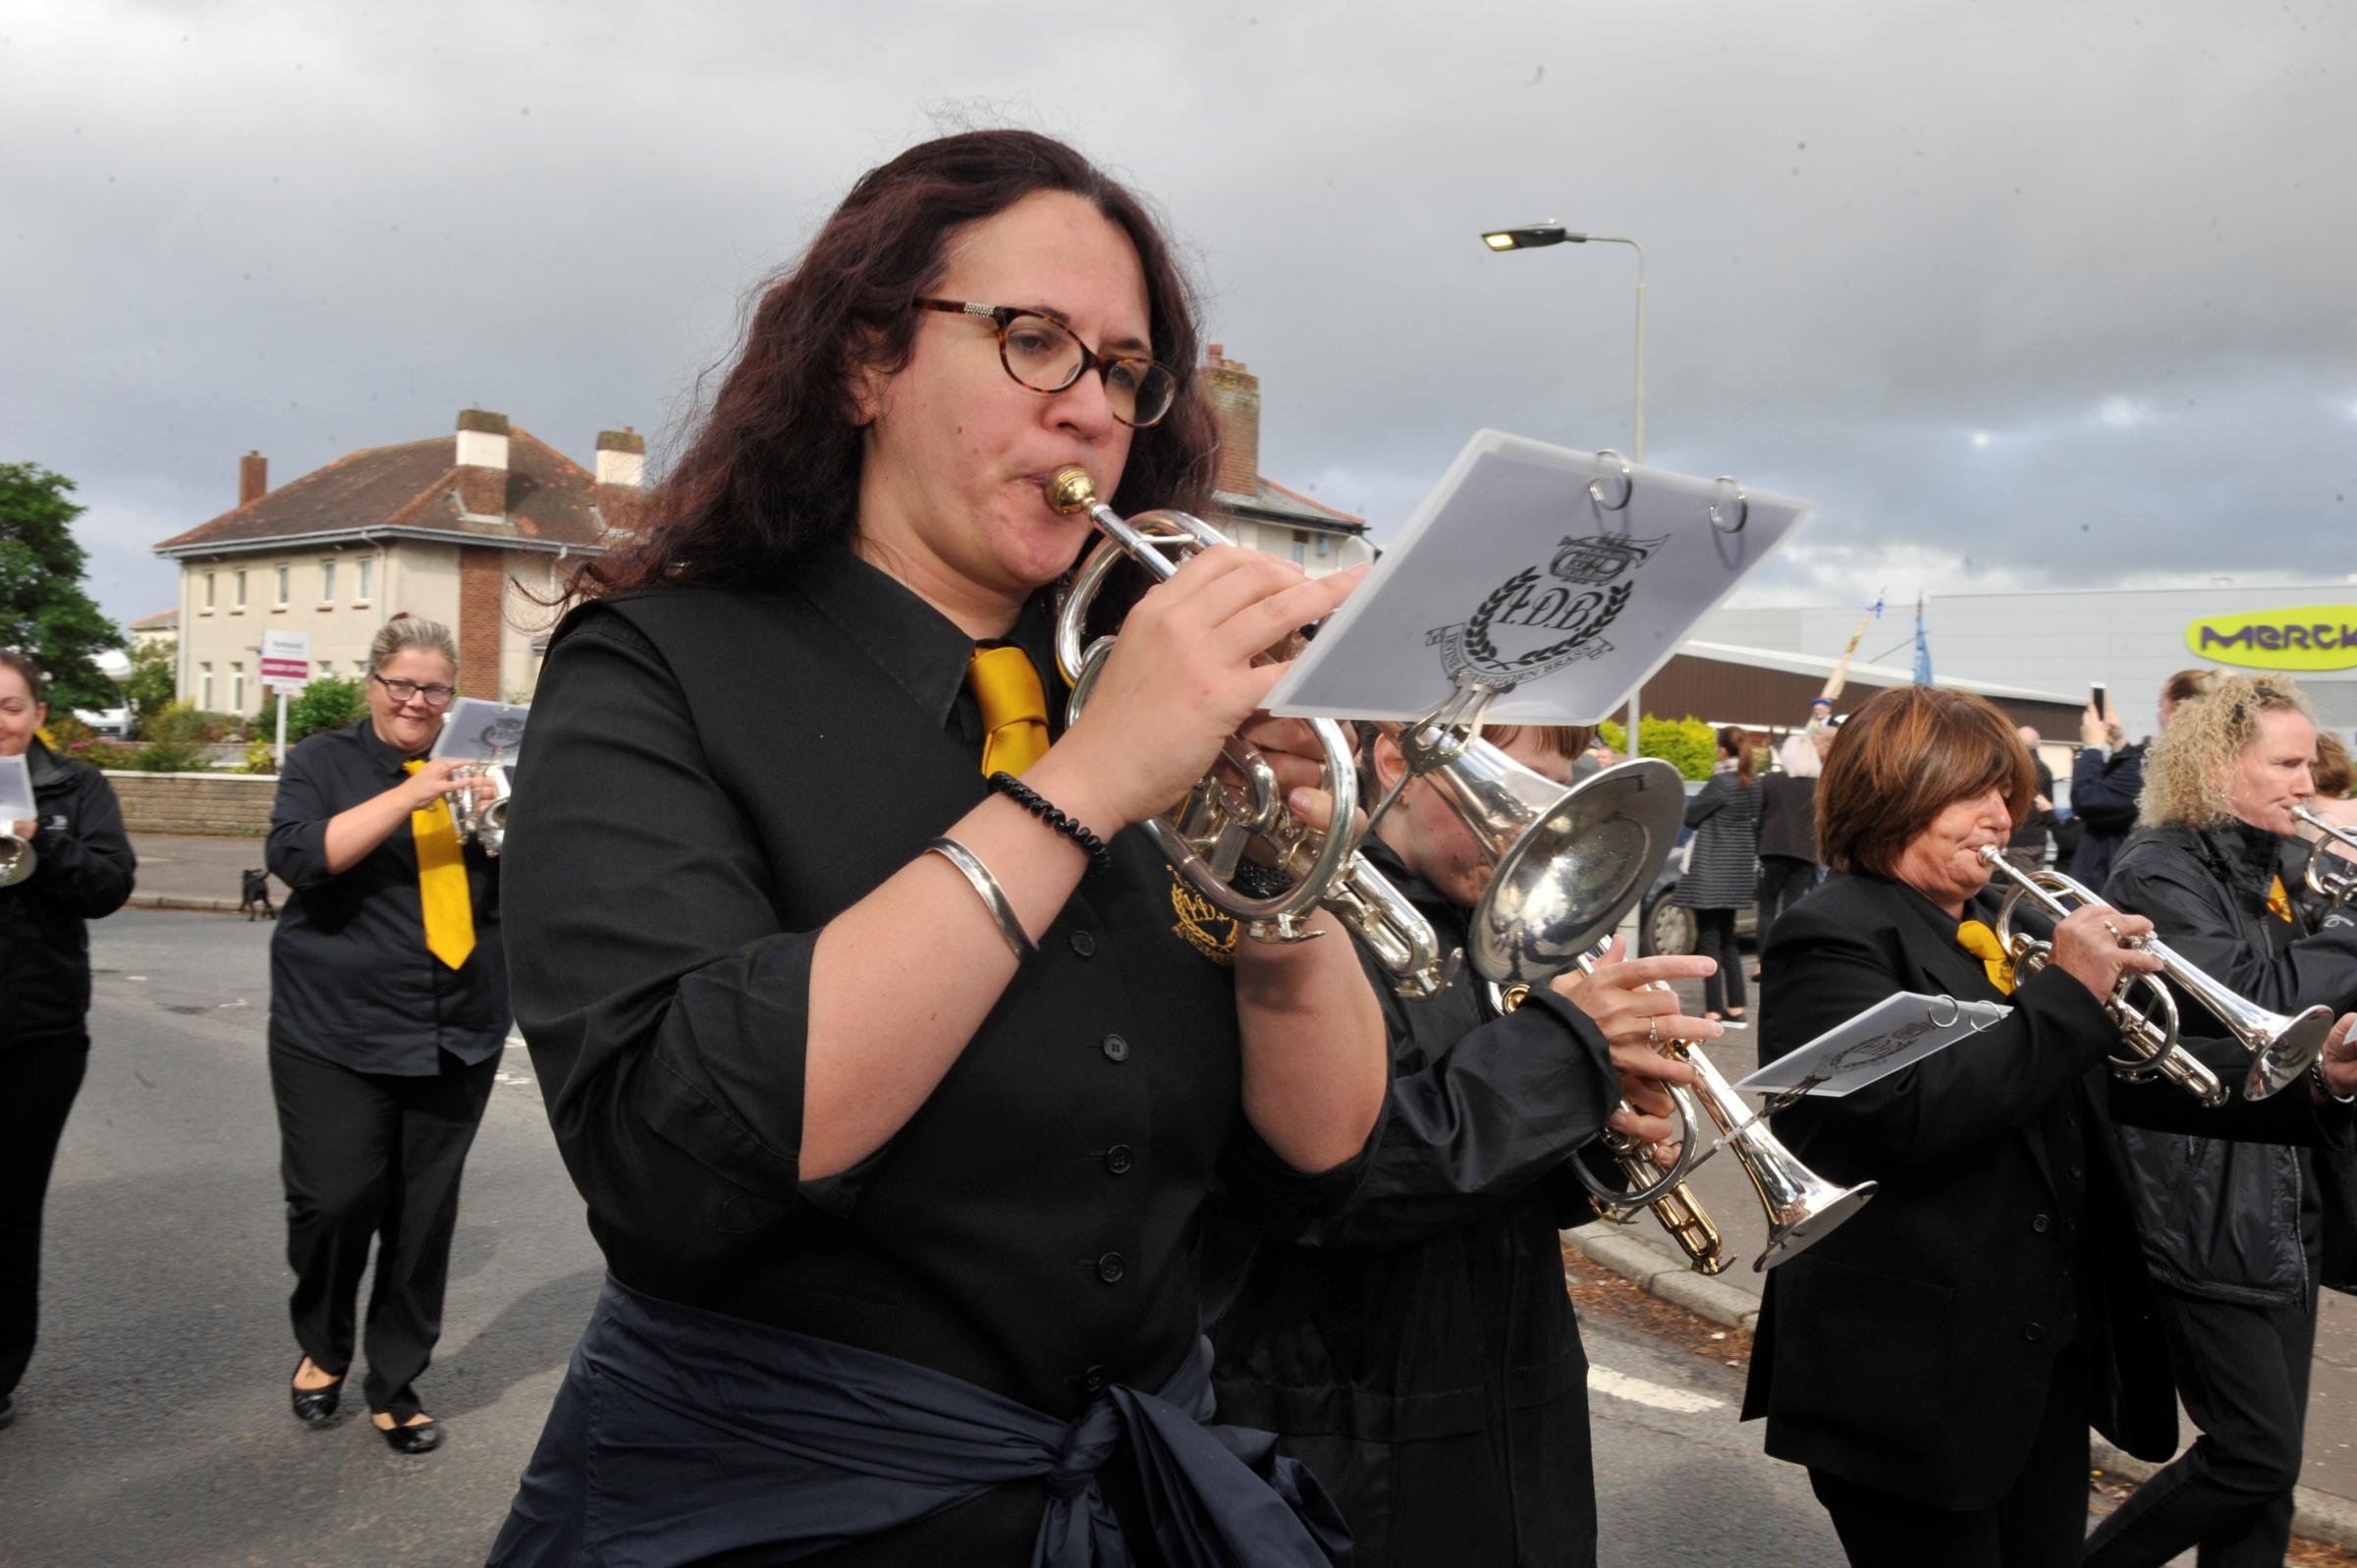 Irvine and Dreghorn Brass Band's big summer concert date